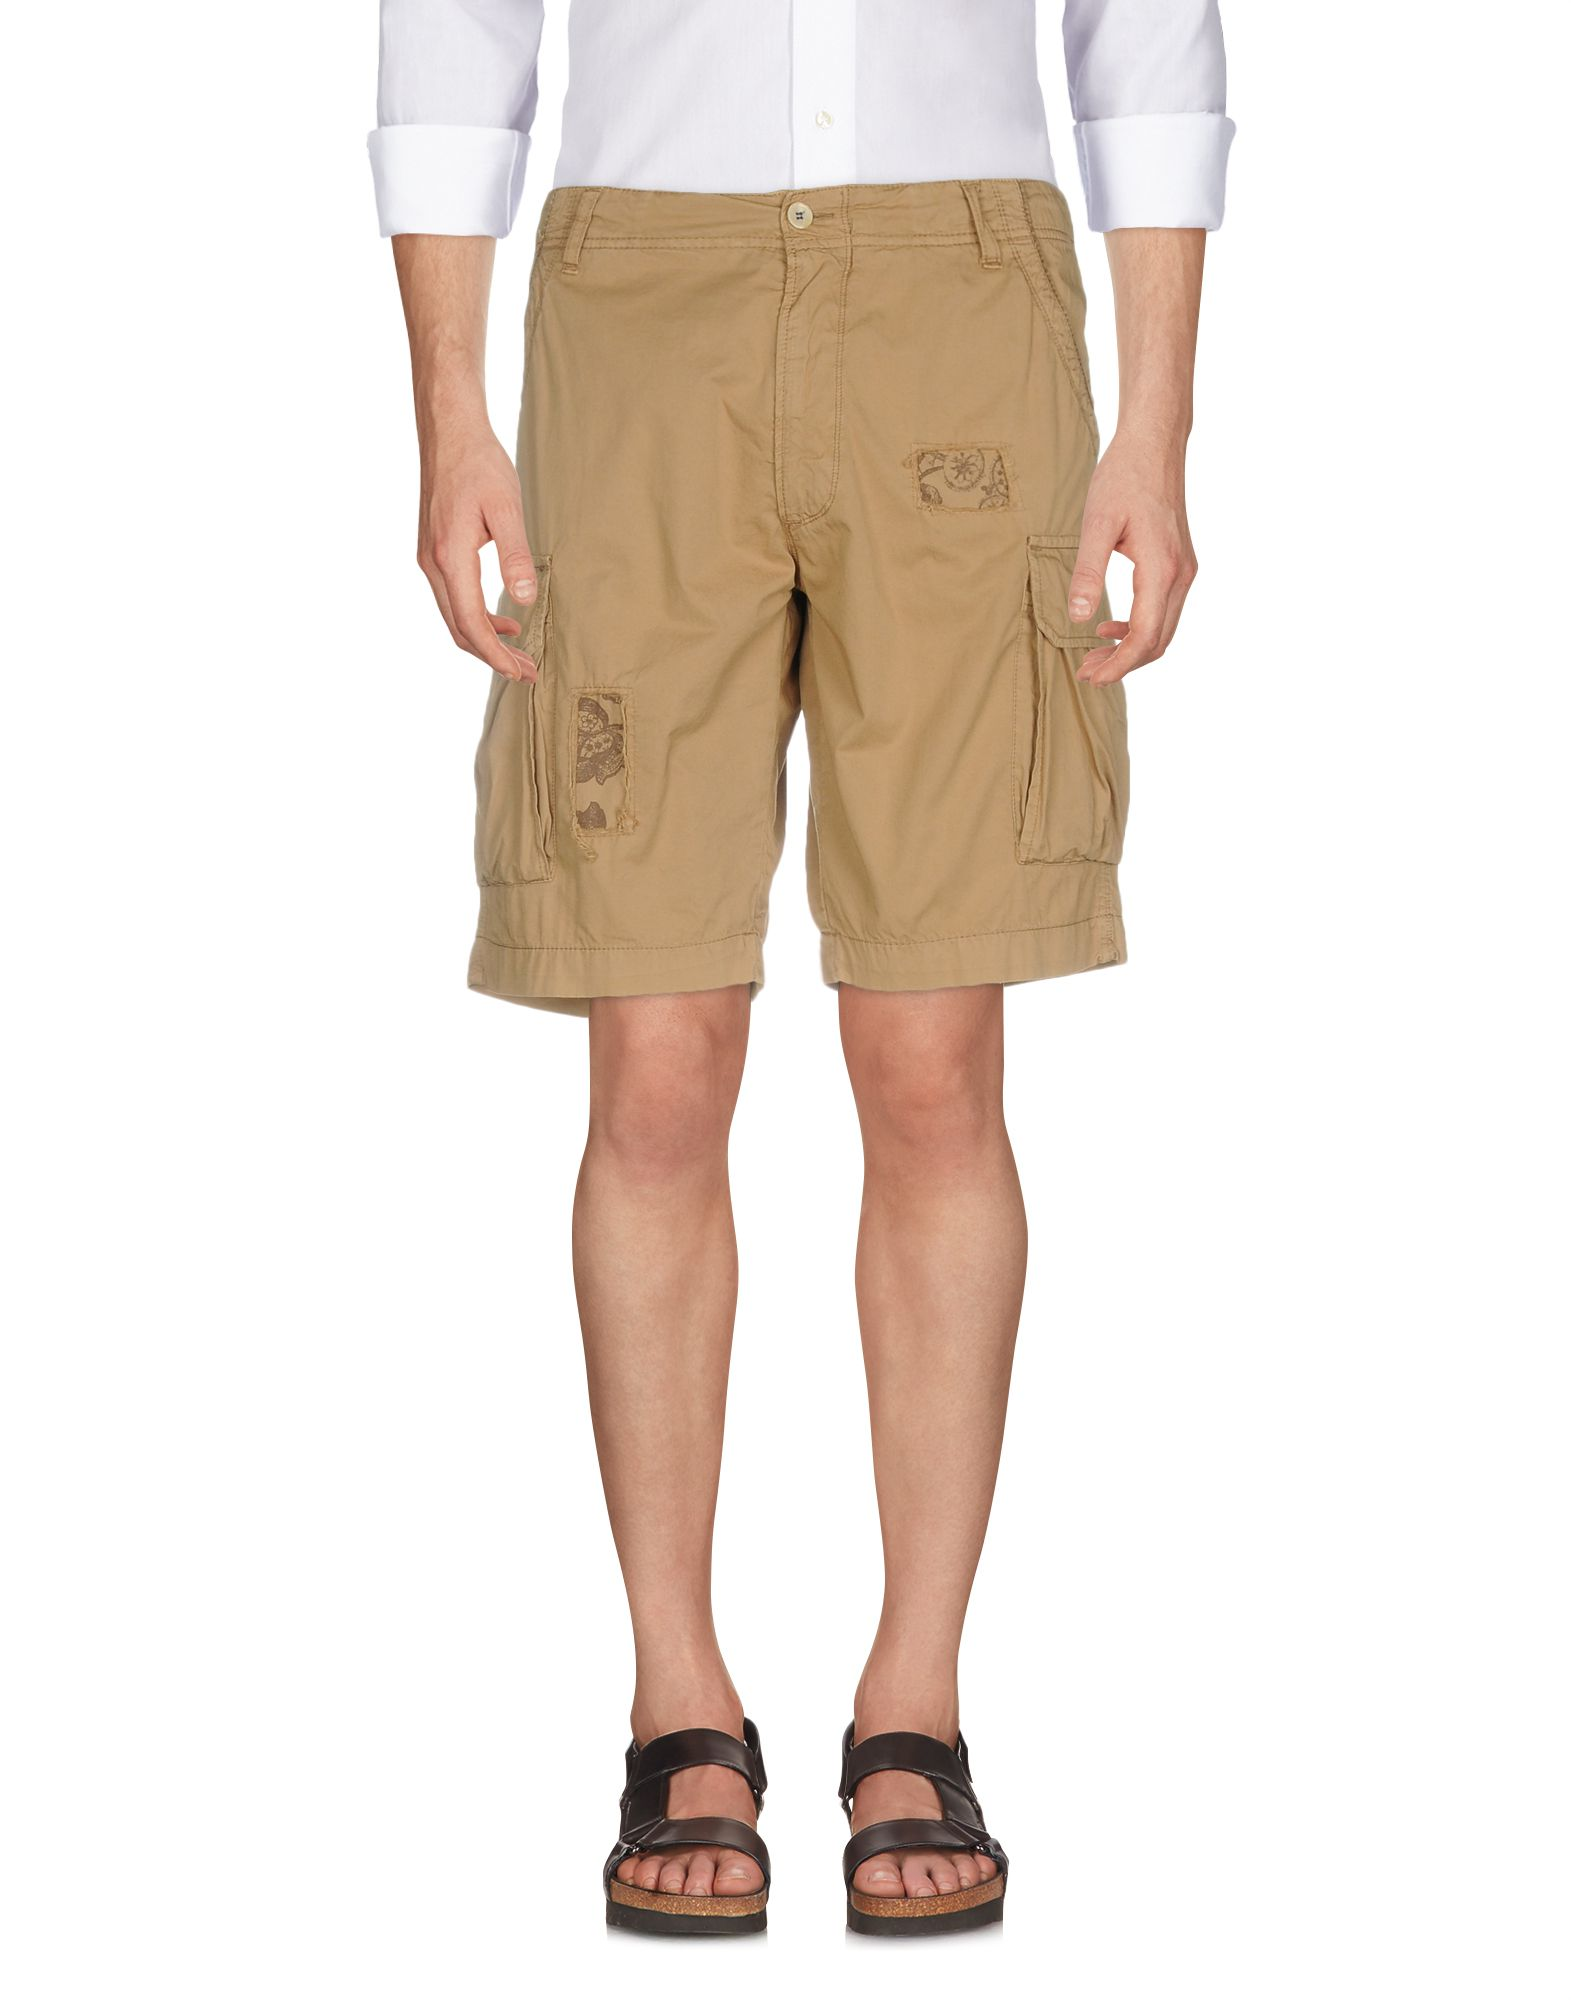 PERFECTION Shorts & Bermuda in Sand